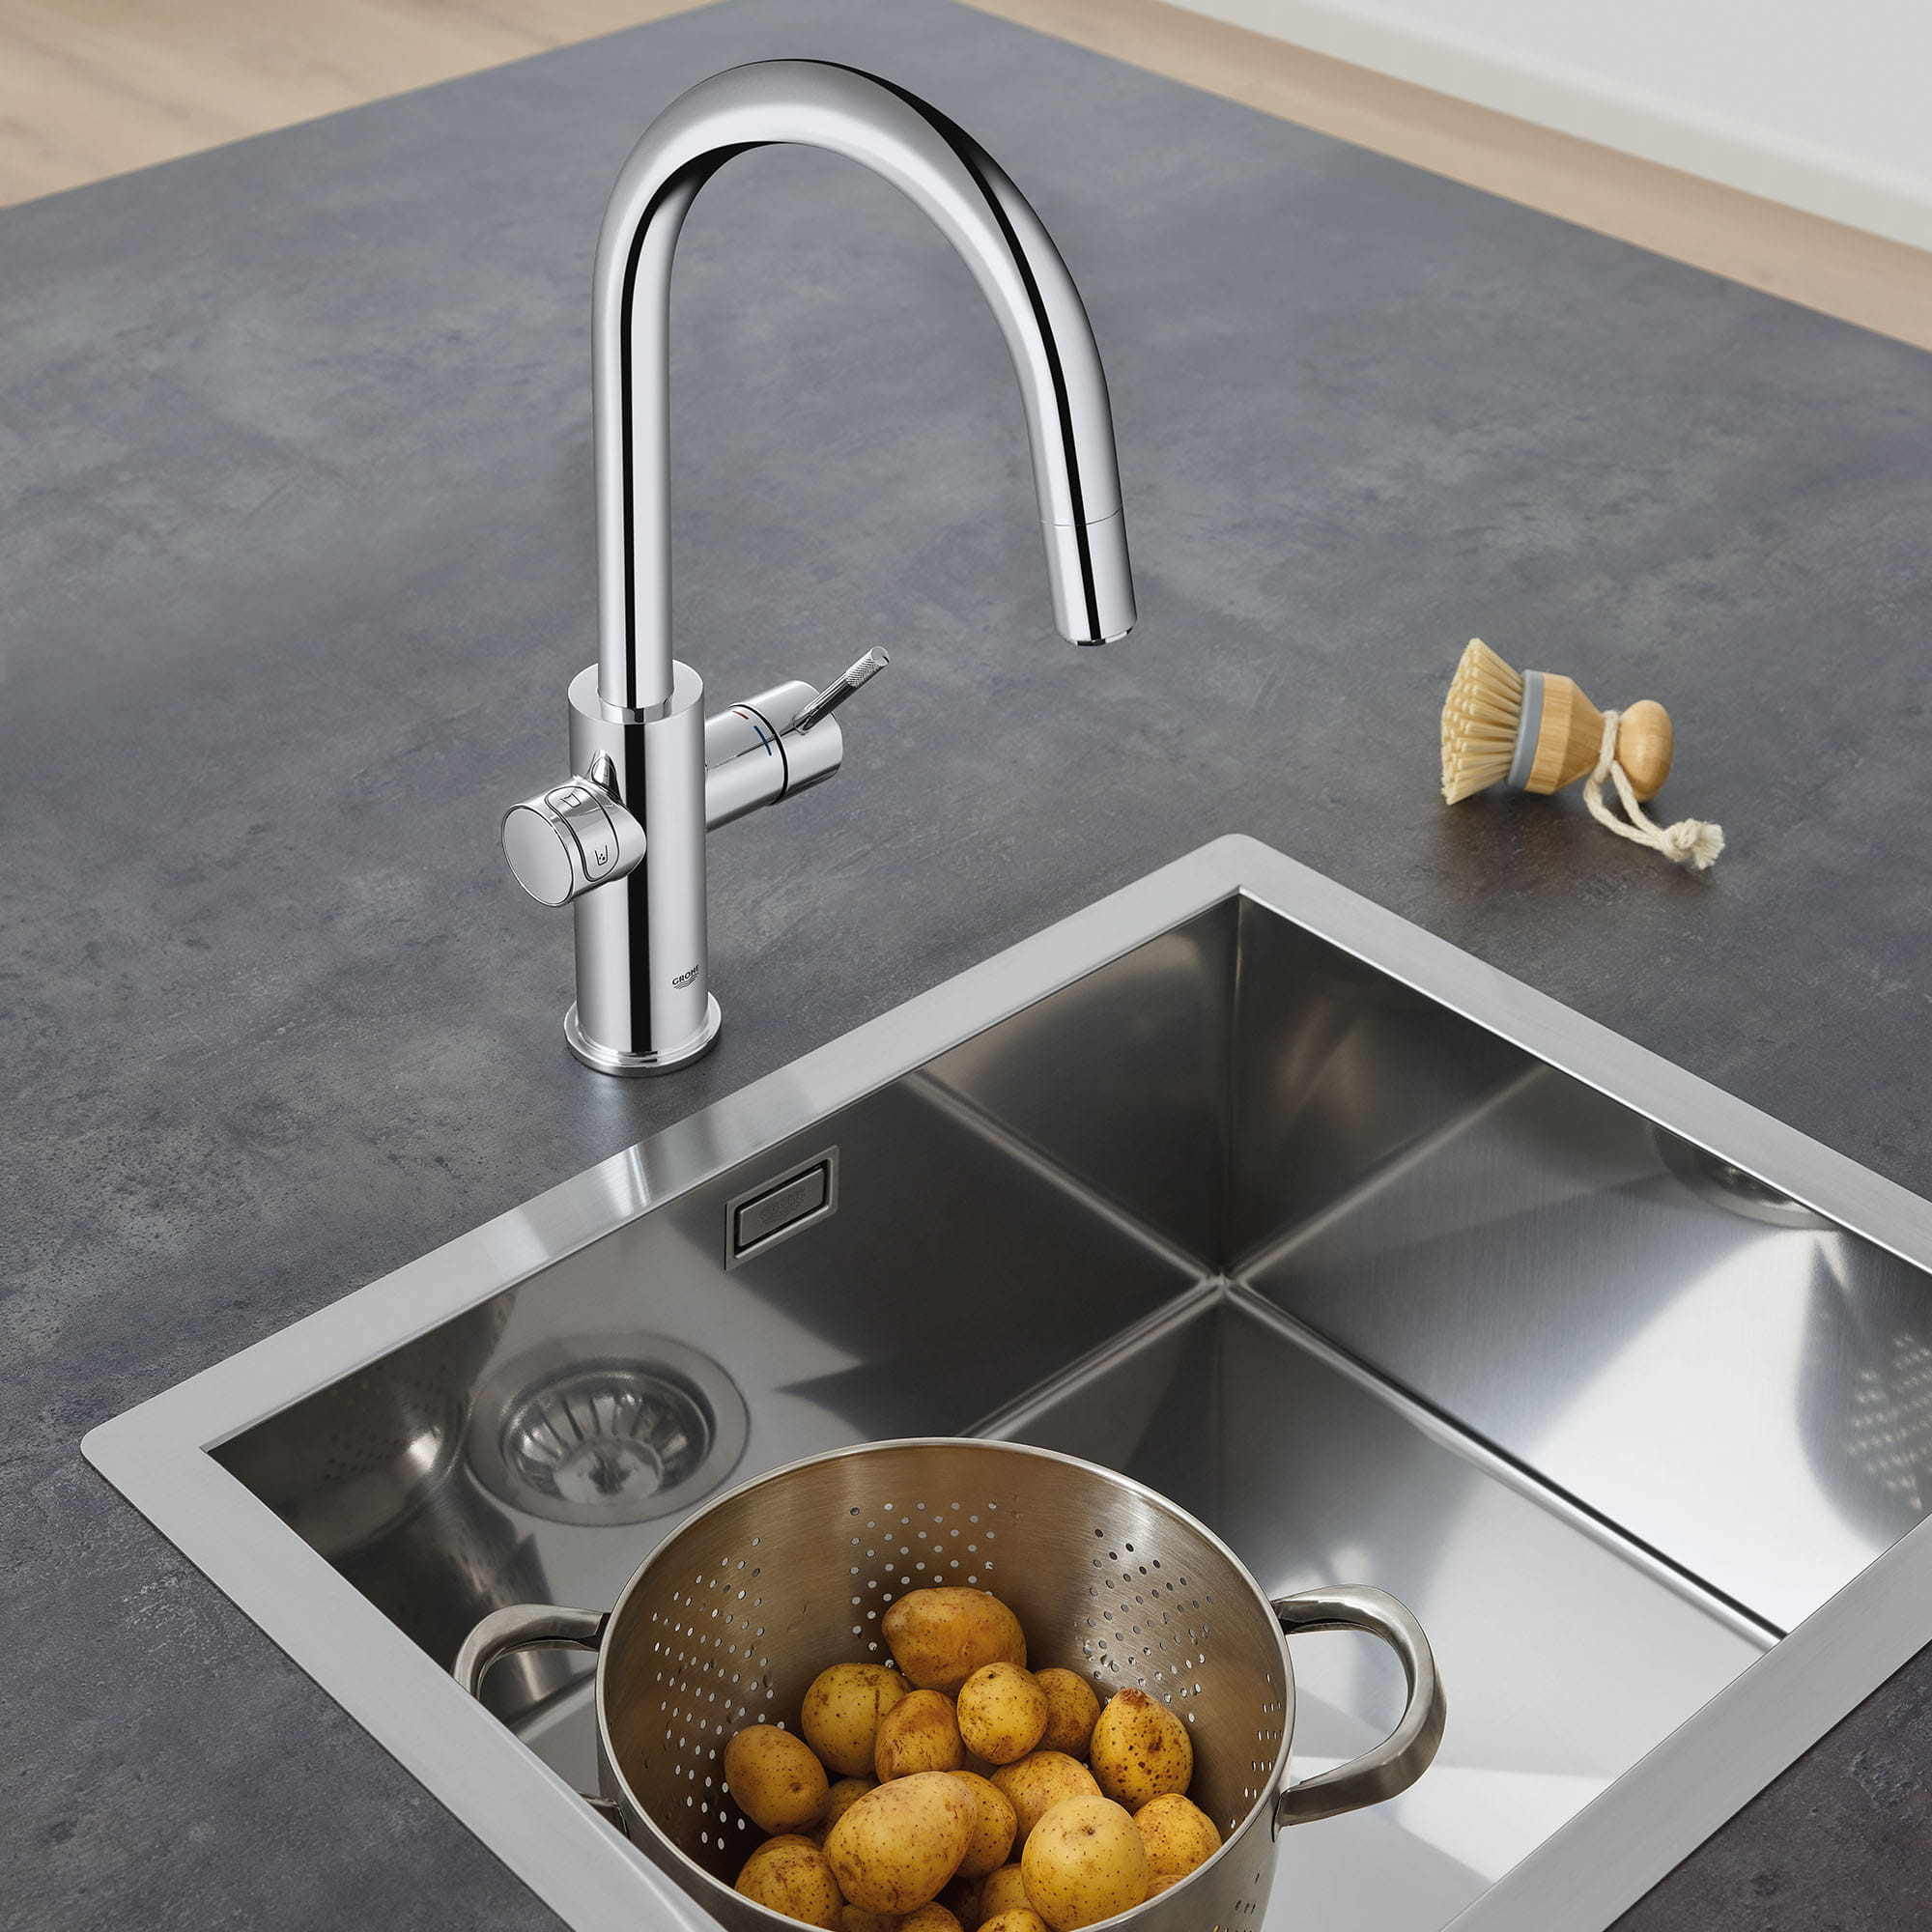 Single Handle Pull Down Kitchen Faucet Single Spray 175 GPM Chilled and Sparkling Water GROHE CHROME